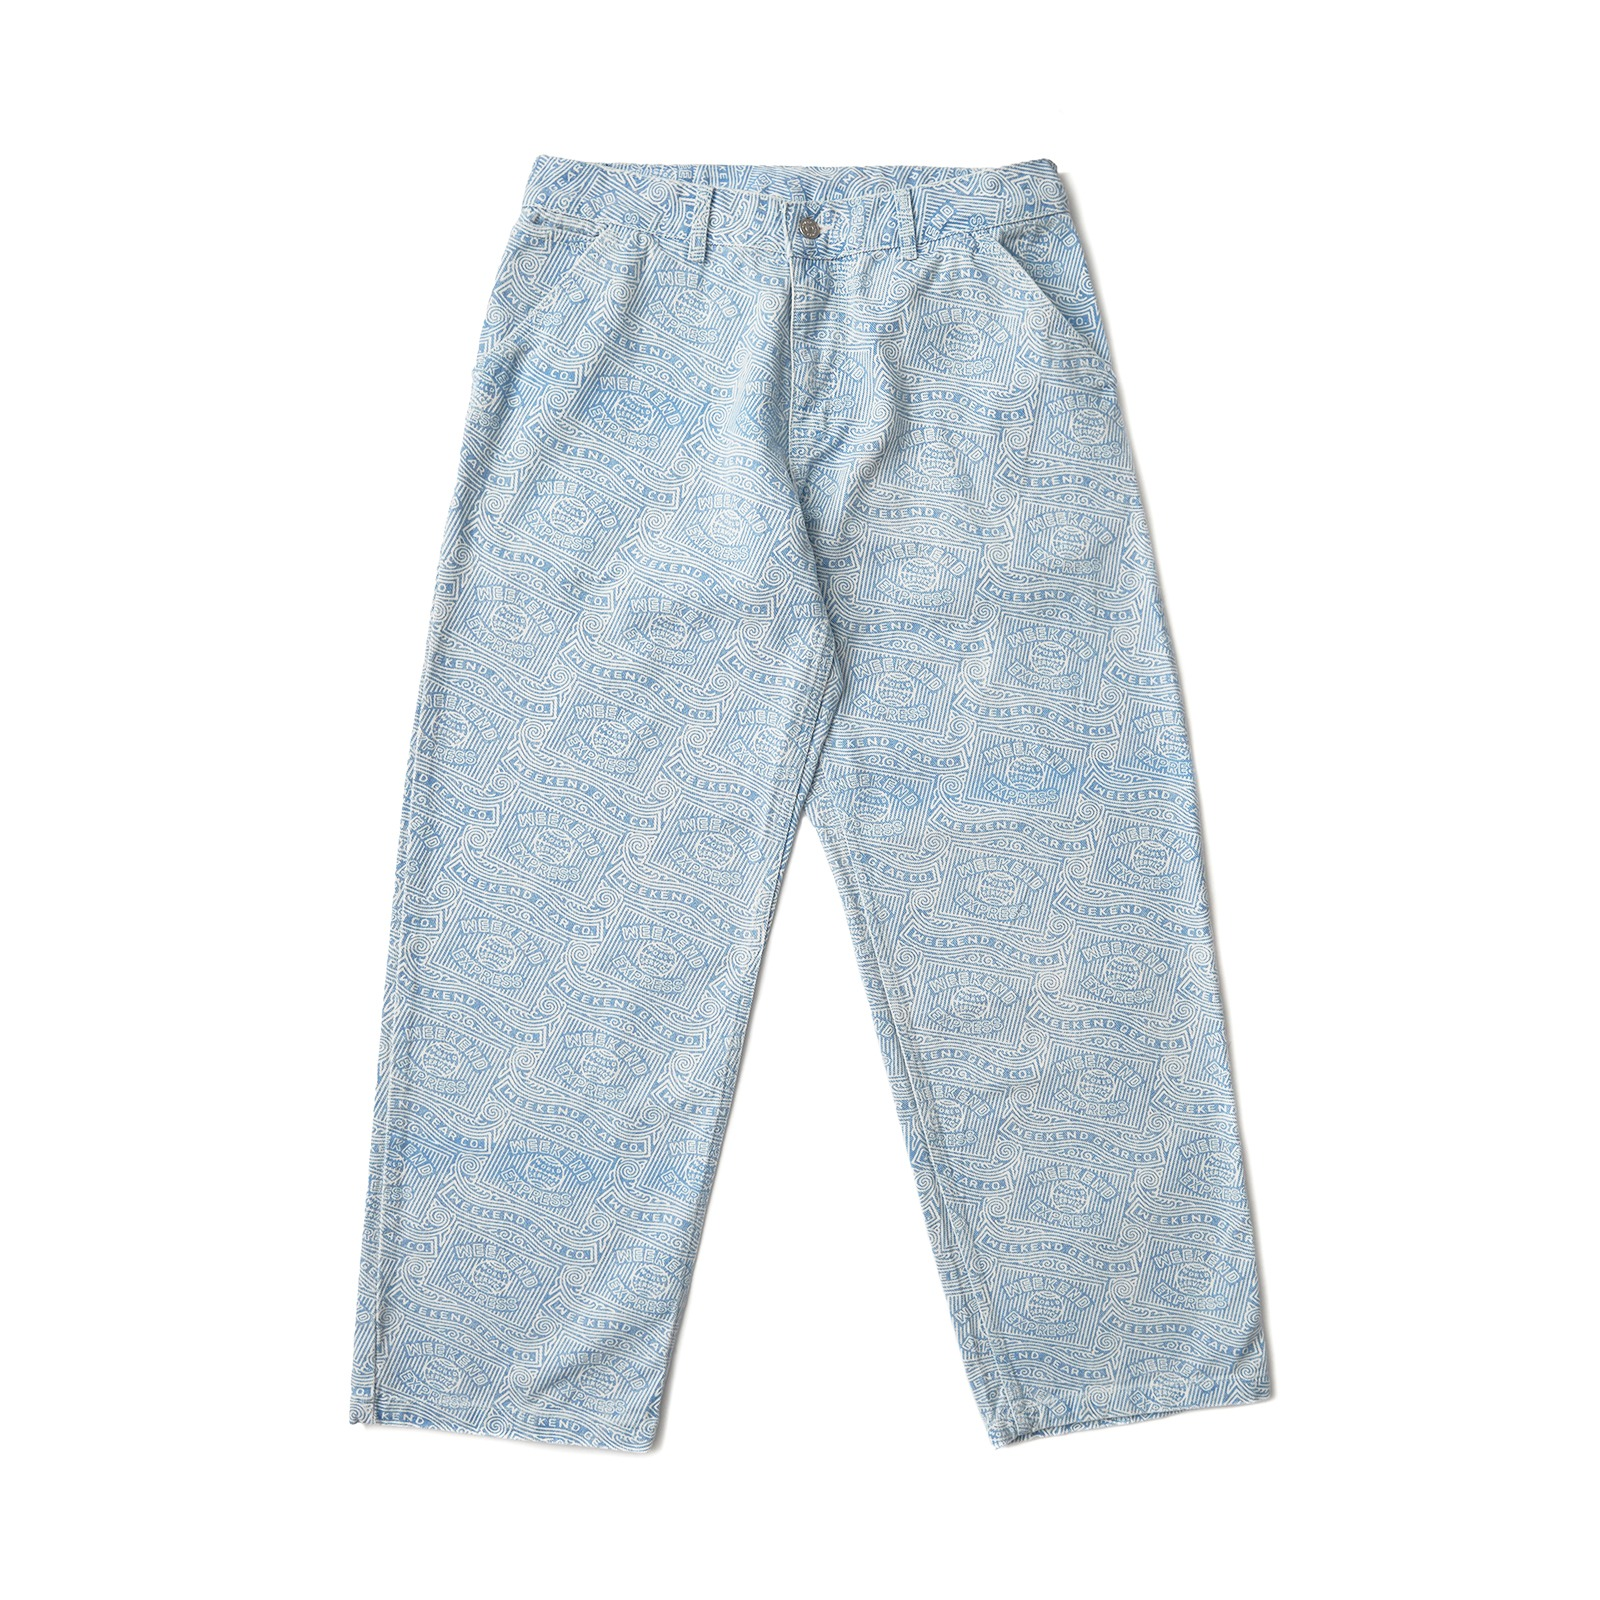 WKND EXPRESS PANTS (S.BLUE)